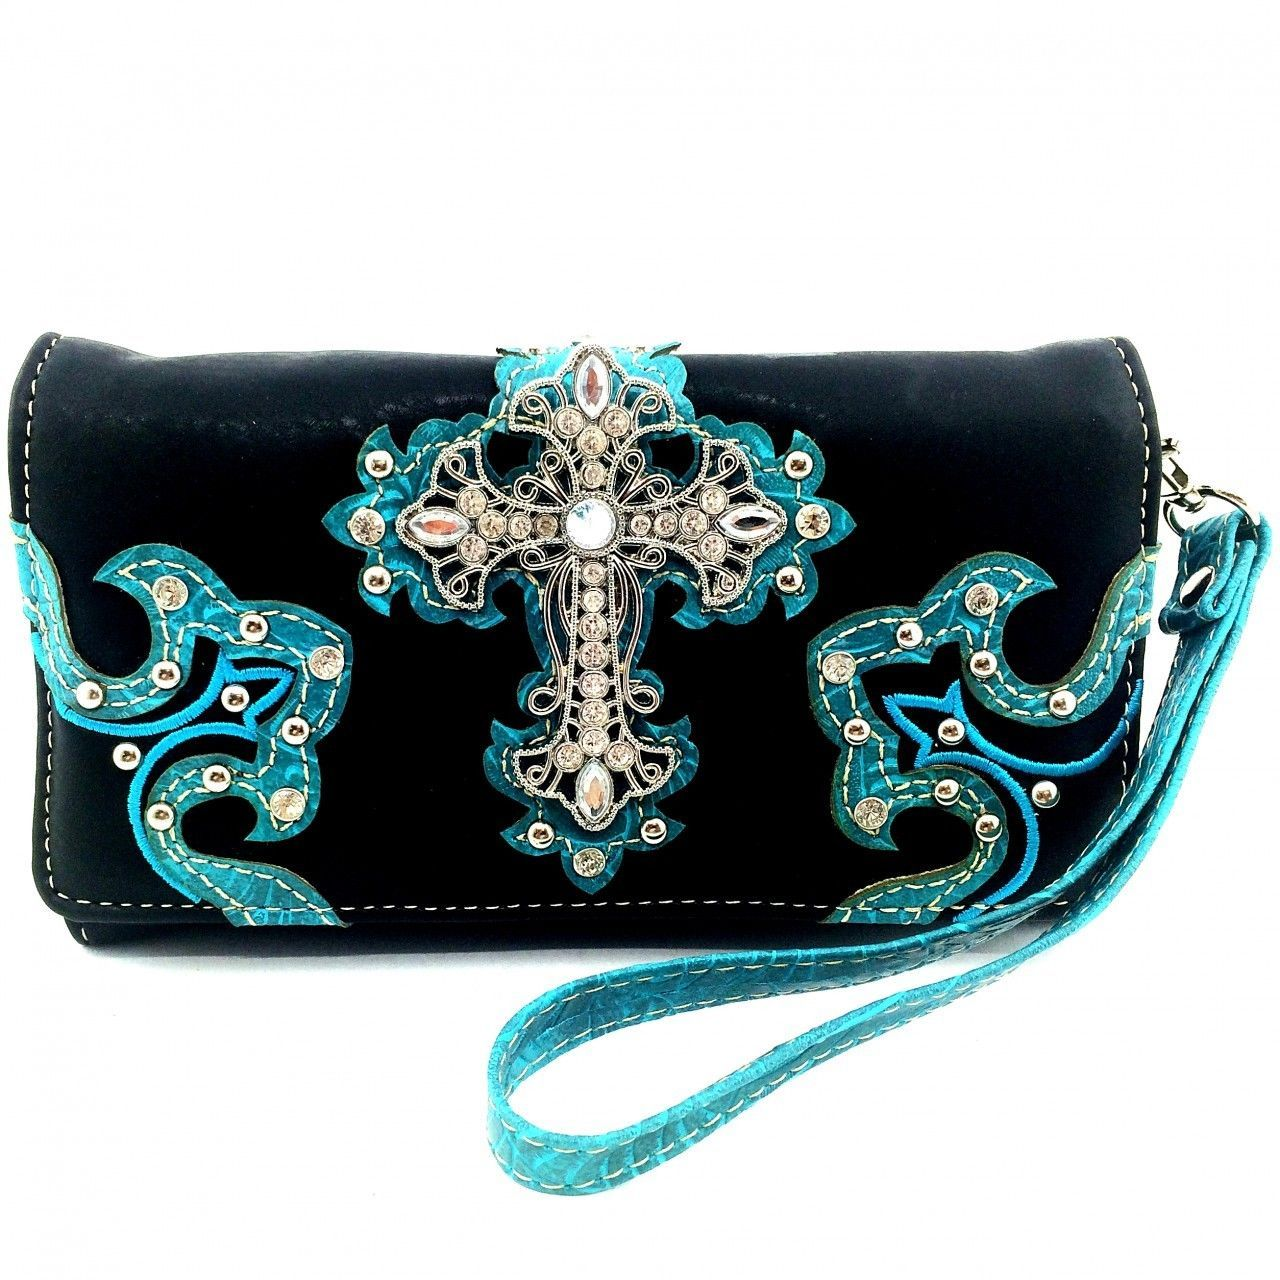 Western Studded Rhinestone Cross Zip Around Wallet Clutch Purse Wristlet Cowgirl